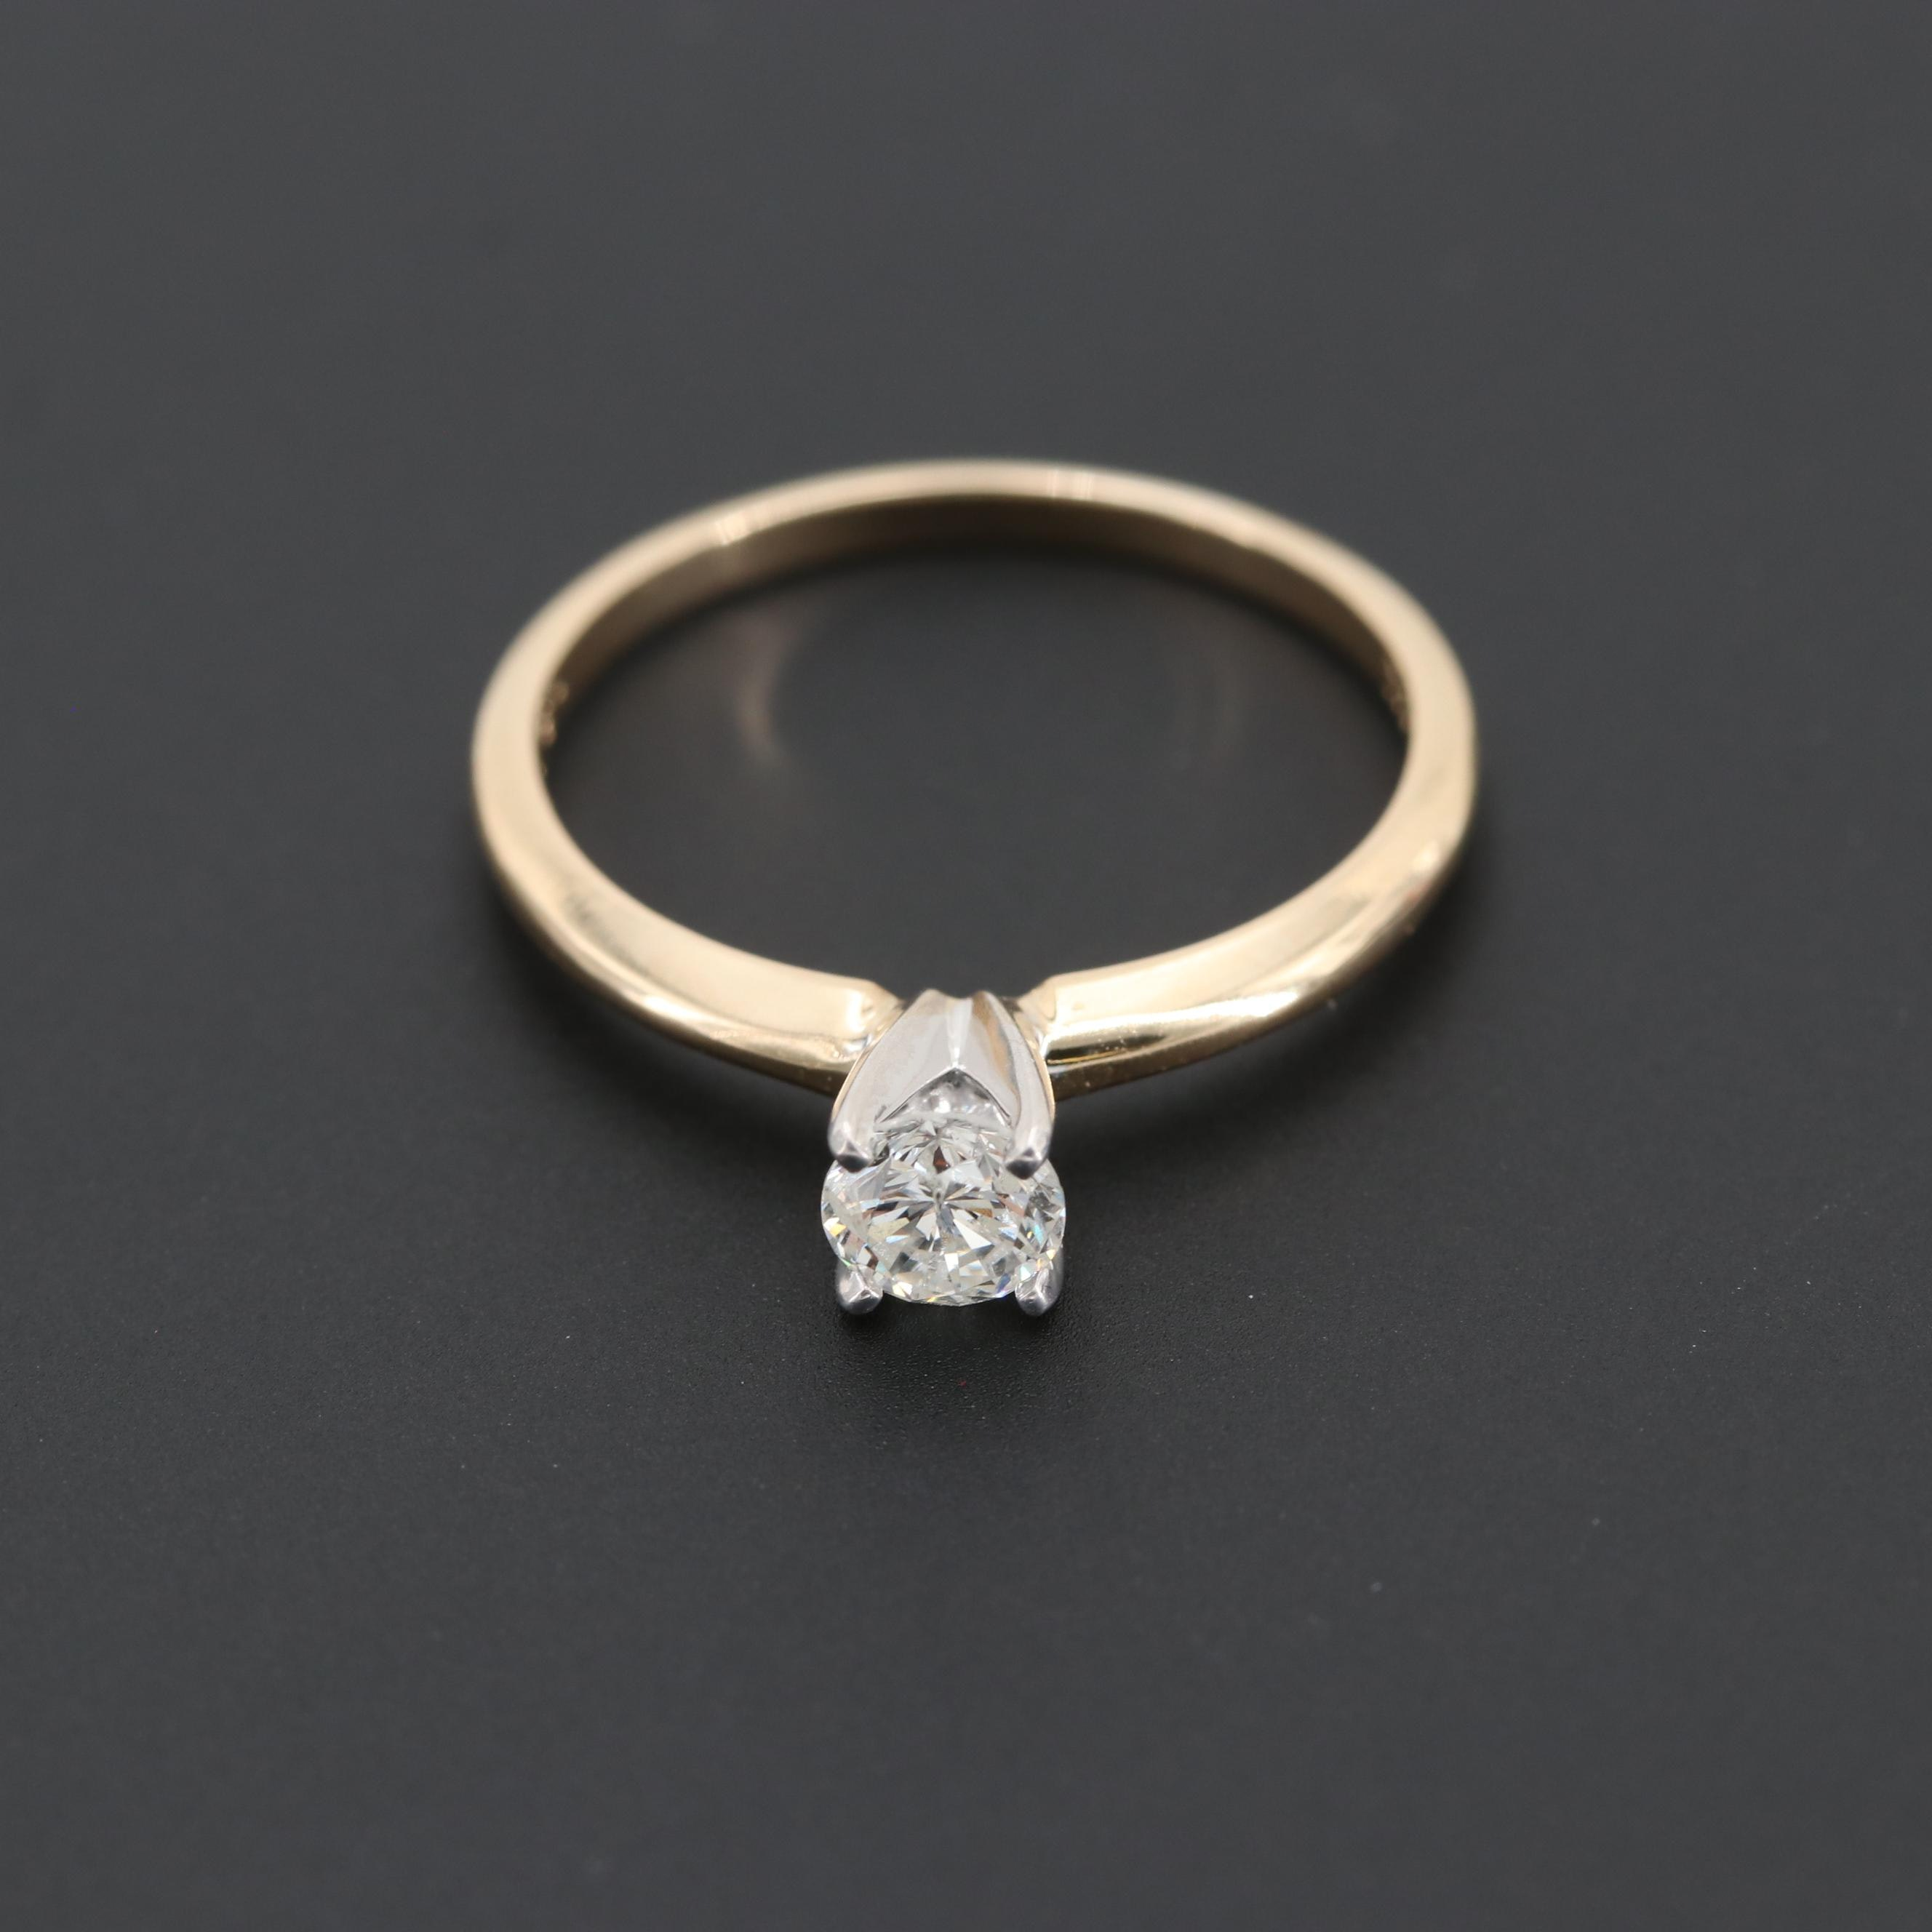 14K Yellow Gold Diamond Solitaire Ring with 10K White Gold Accent